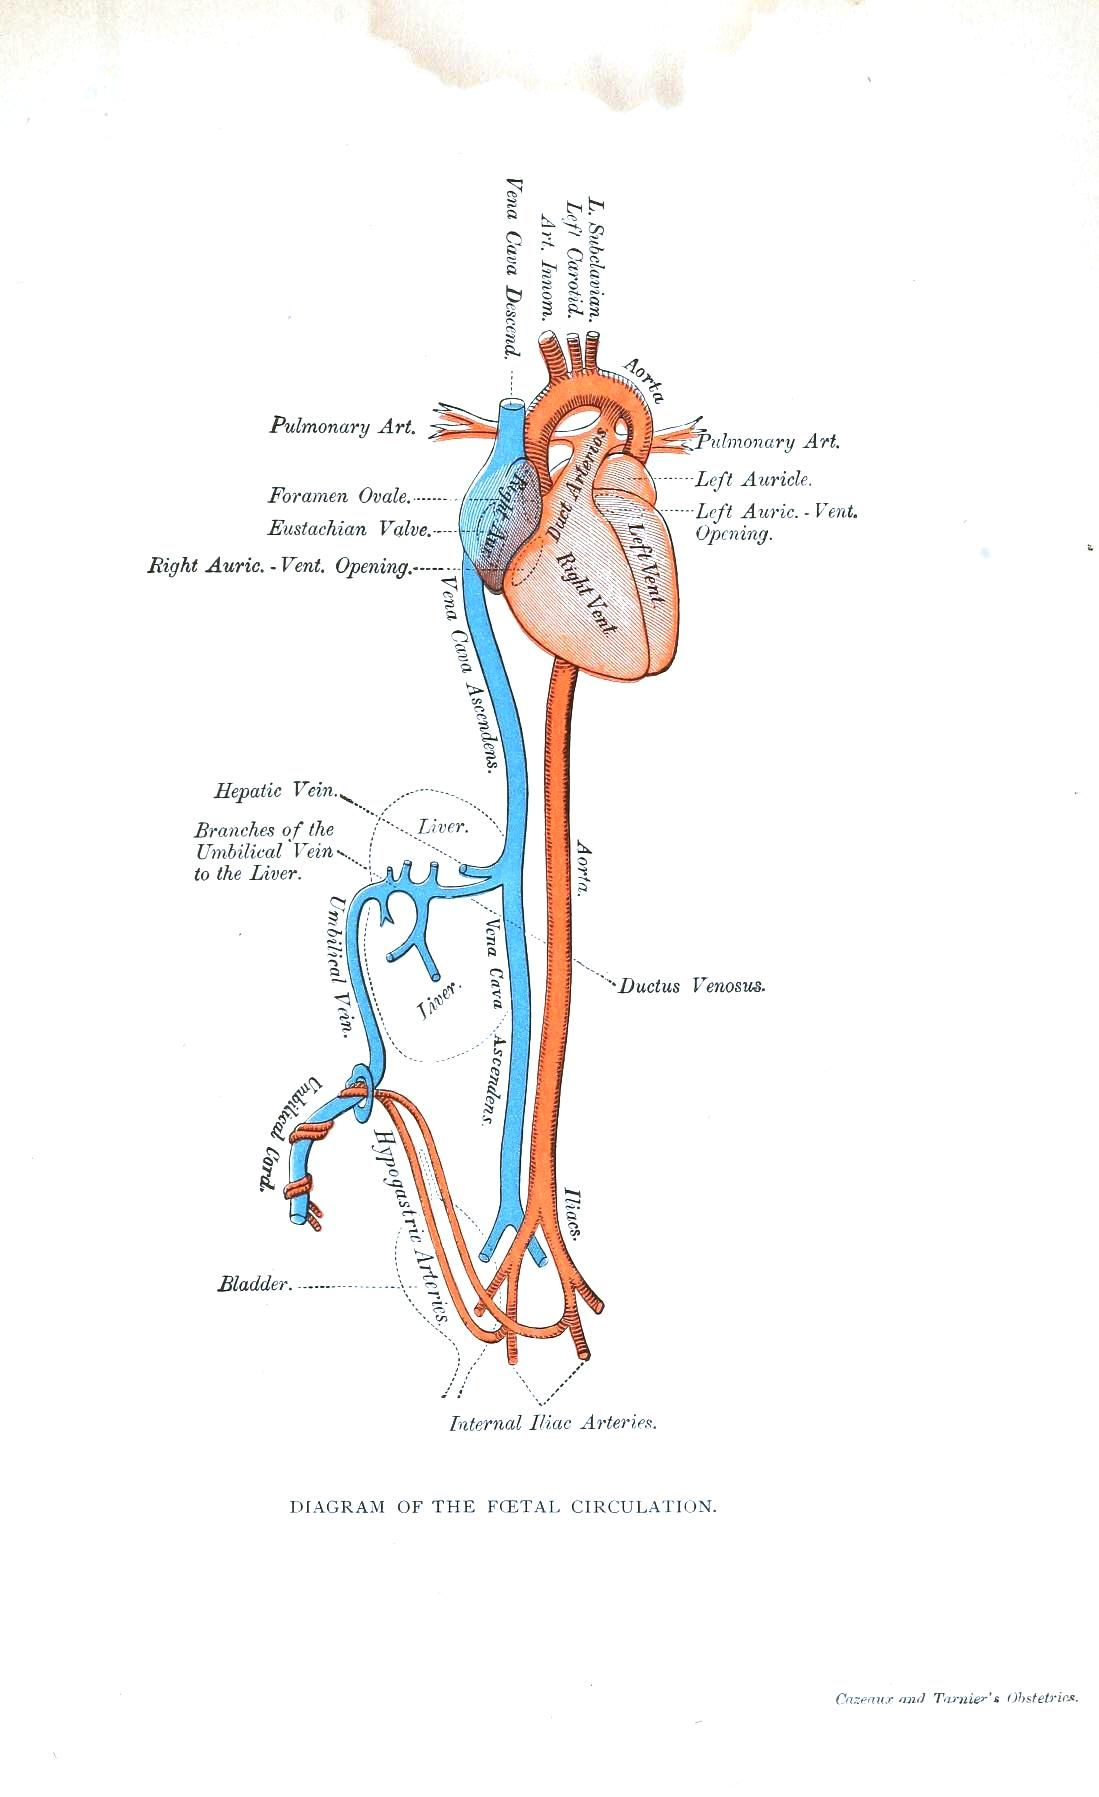 Fetal circulation diagram nurse stuff pinterest nurse stuff fetal circulation diagram nurse stuff pinterest nurse stuff and nursing students nvjuhfo Gallery